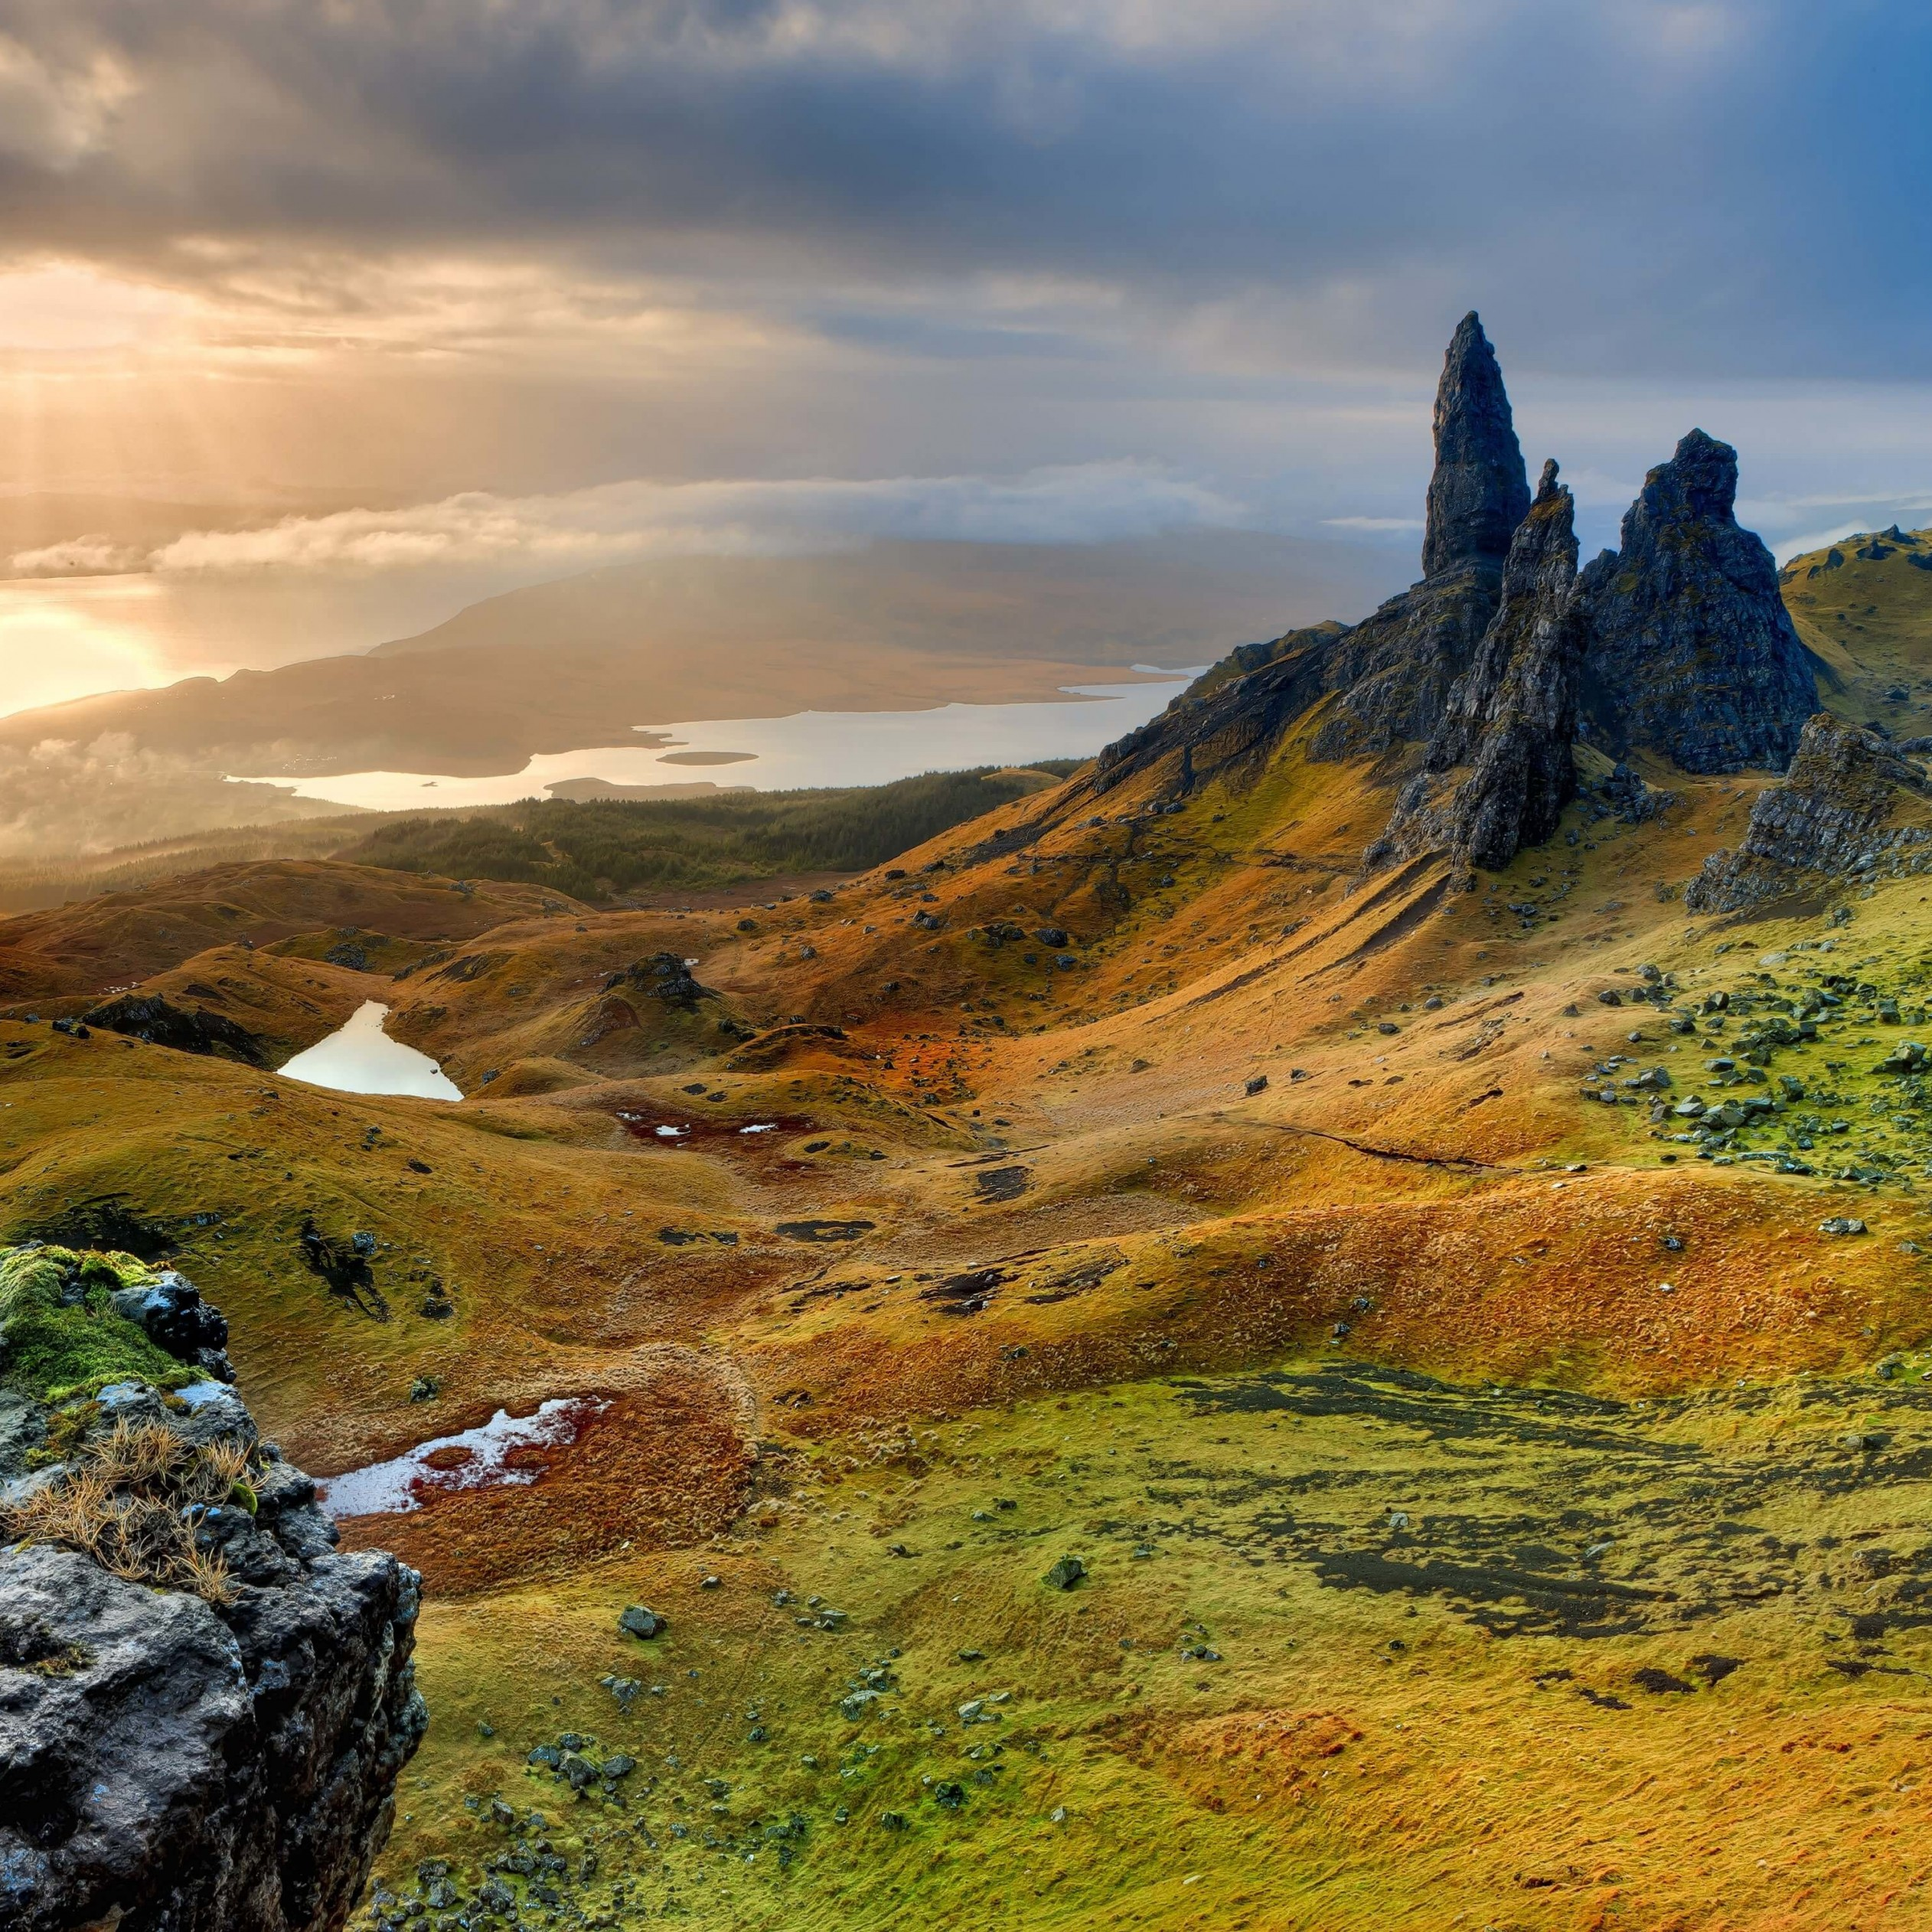 The Old Man of Storr, Isle of Skye, Scotland Wallpaper for Apple iPad 4